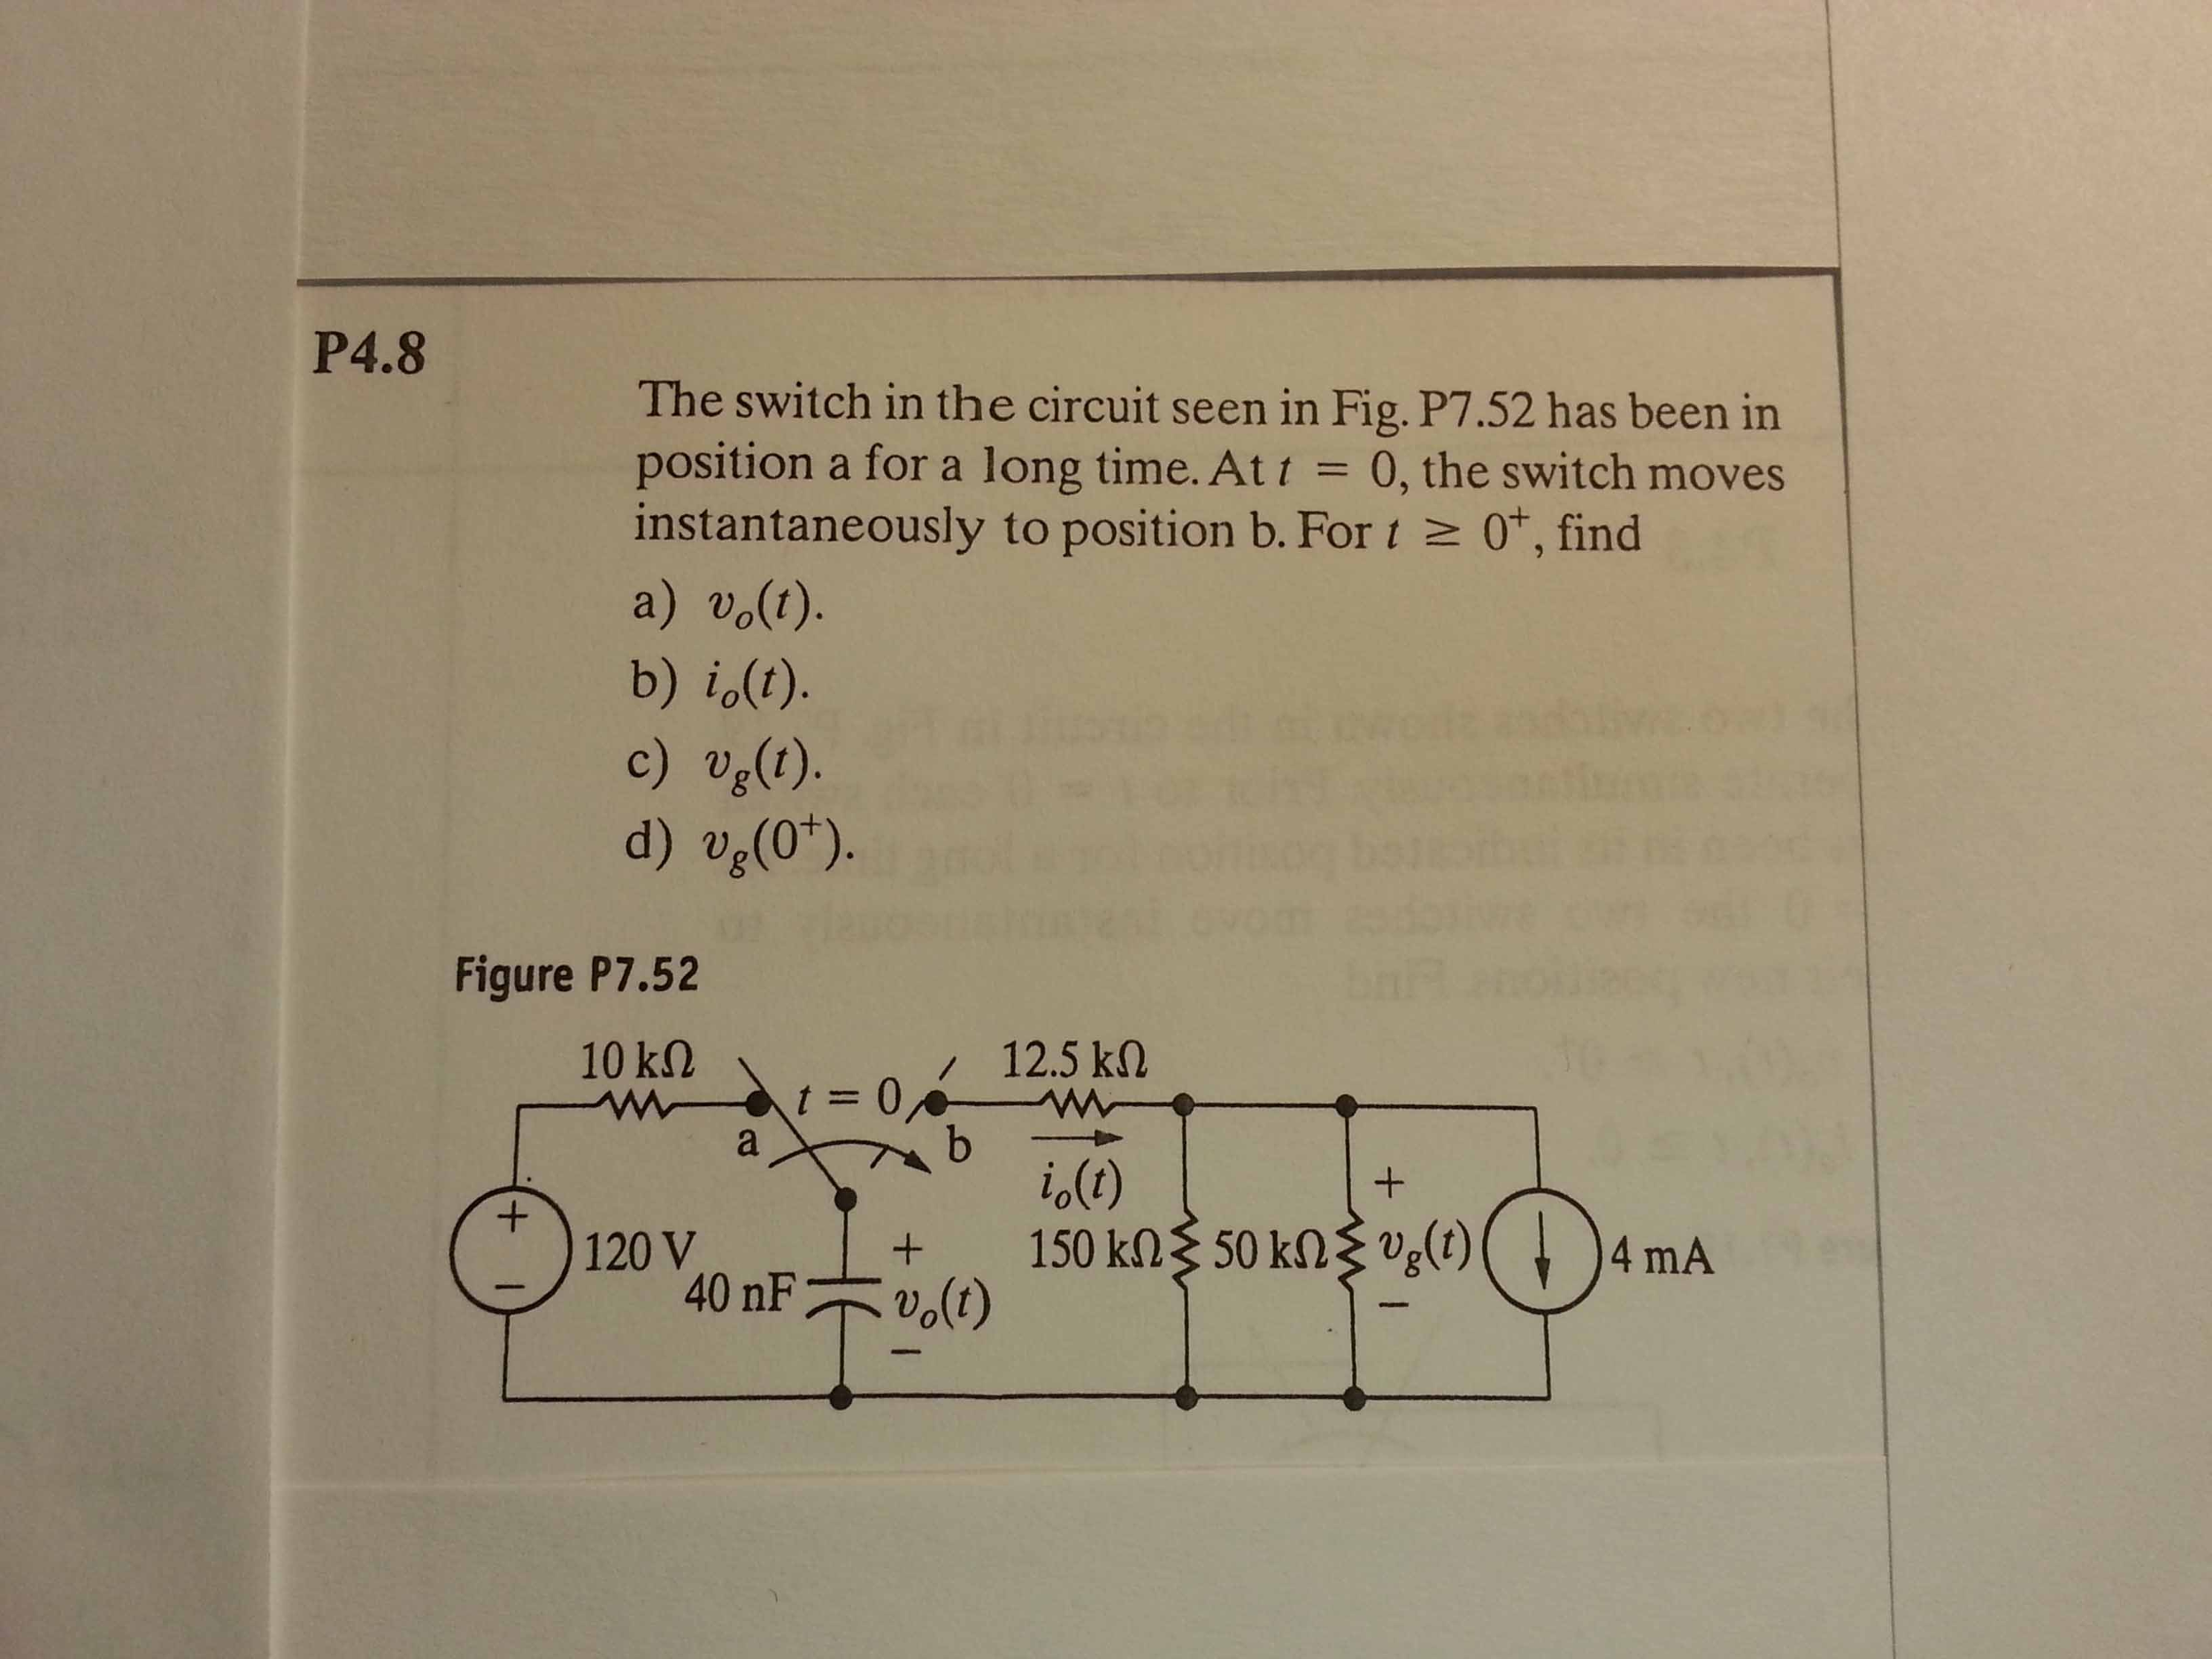 The switch in the circuit seen in Fig. P7.52 has b